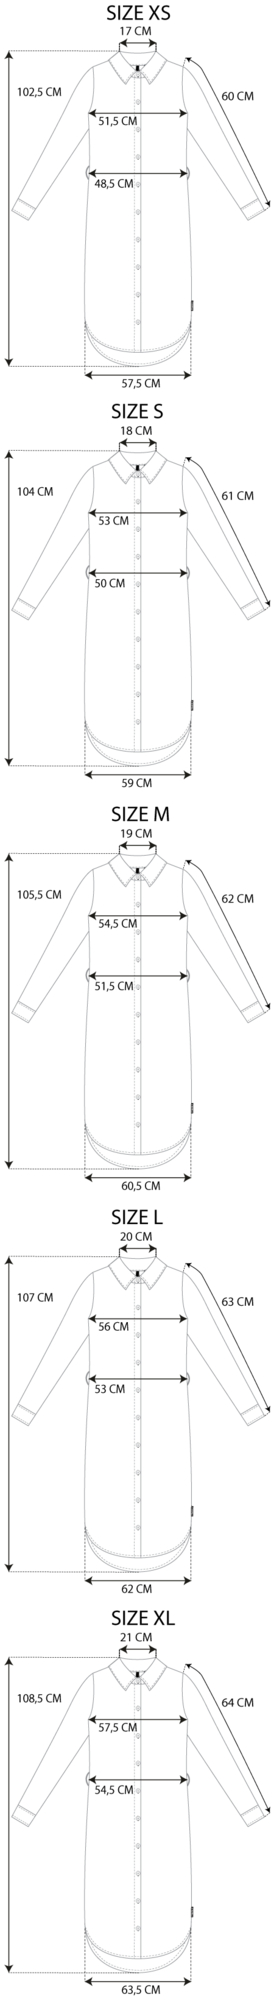 Maattabel shirt dress